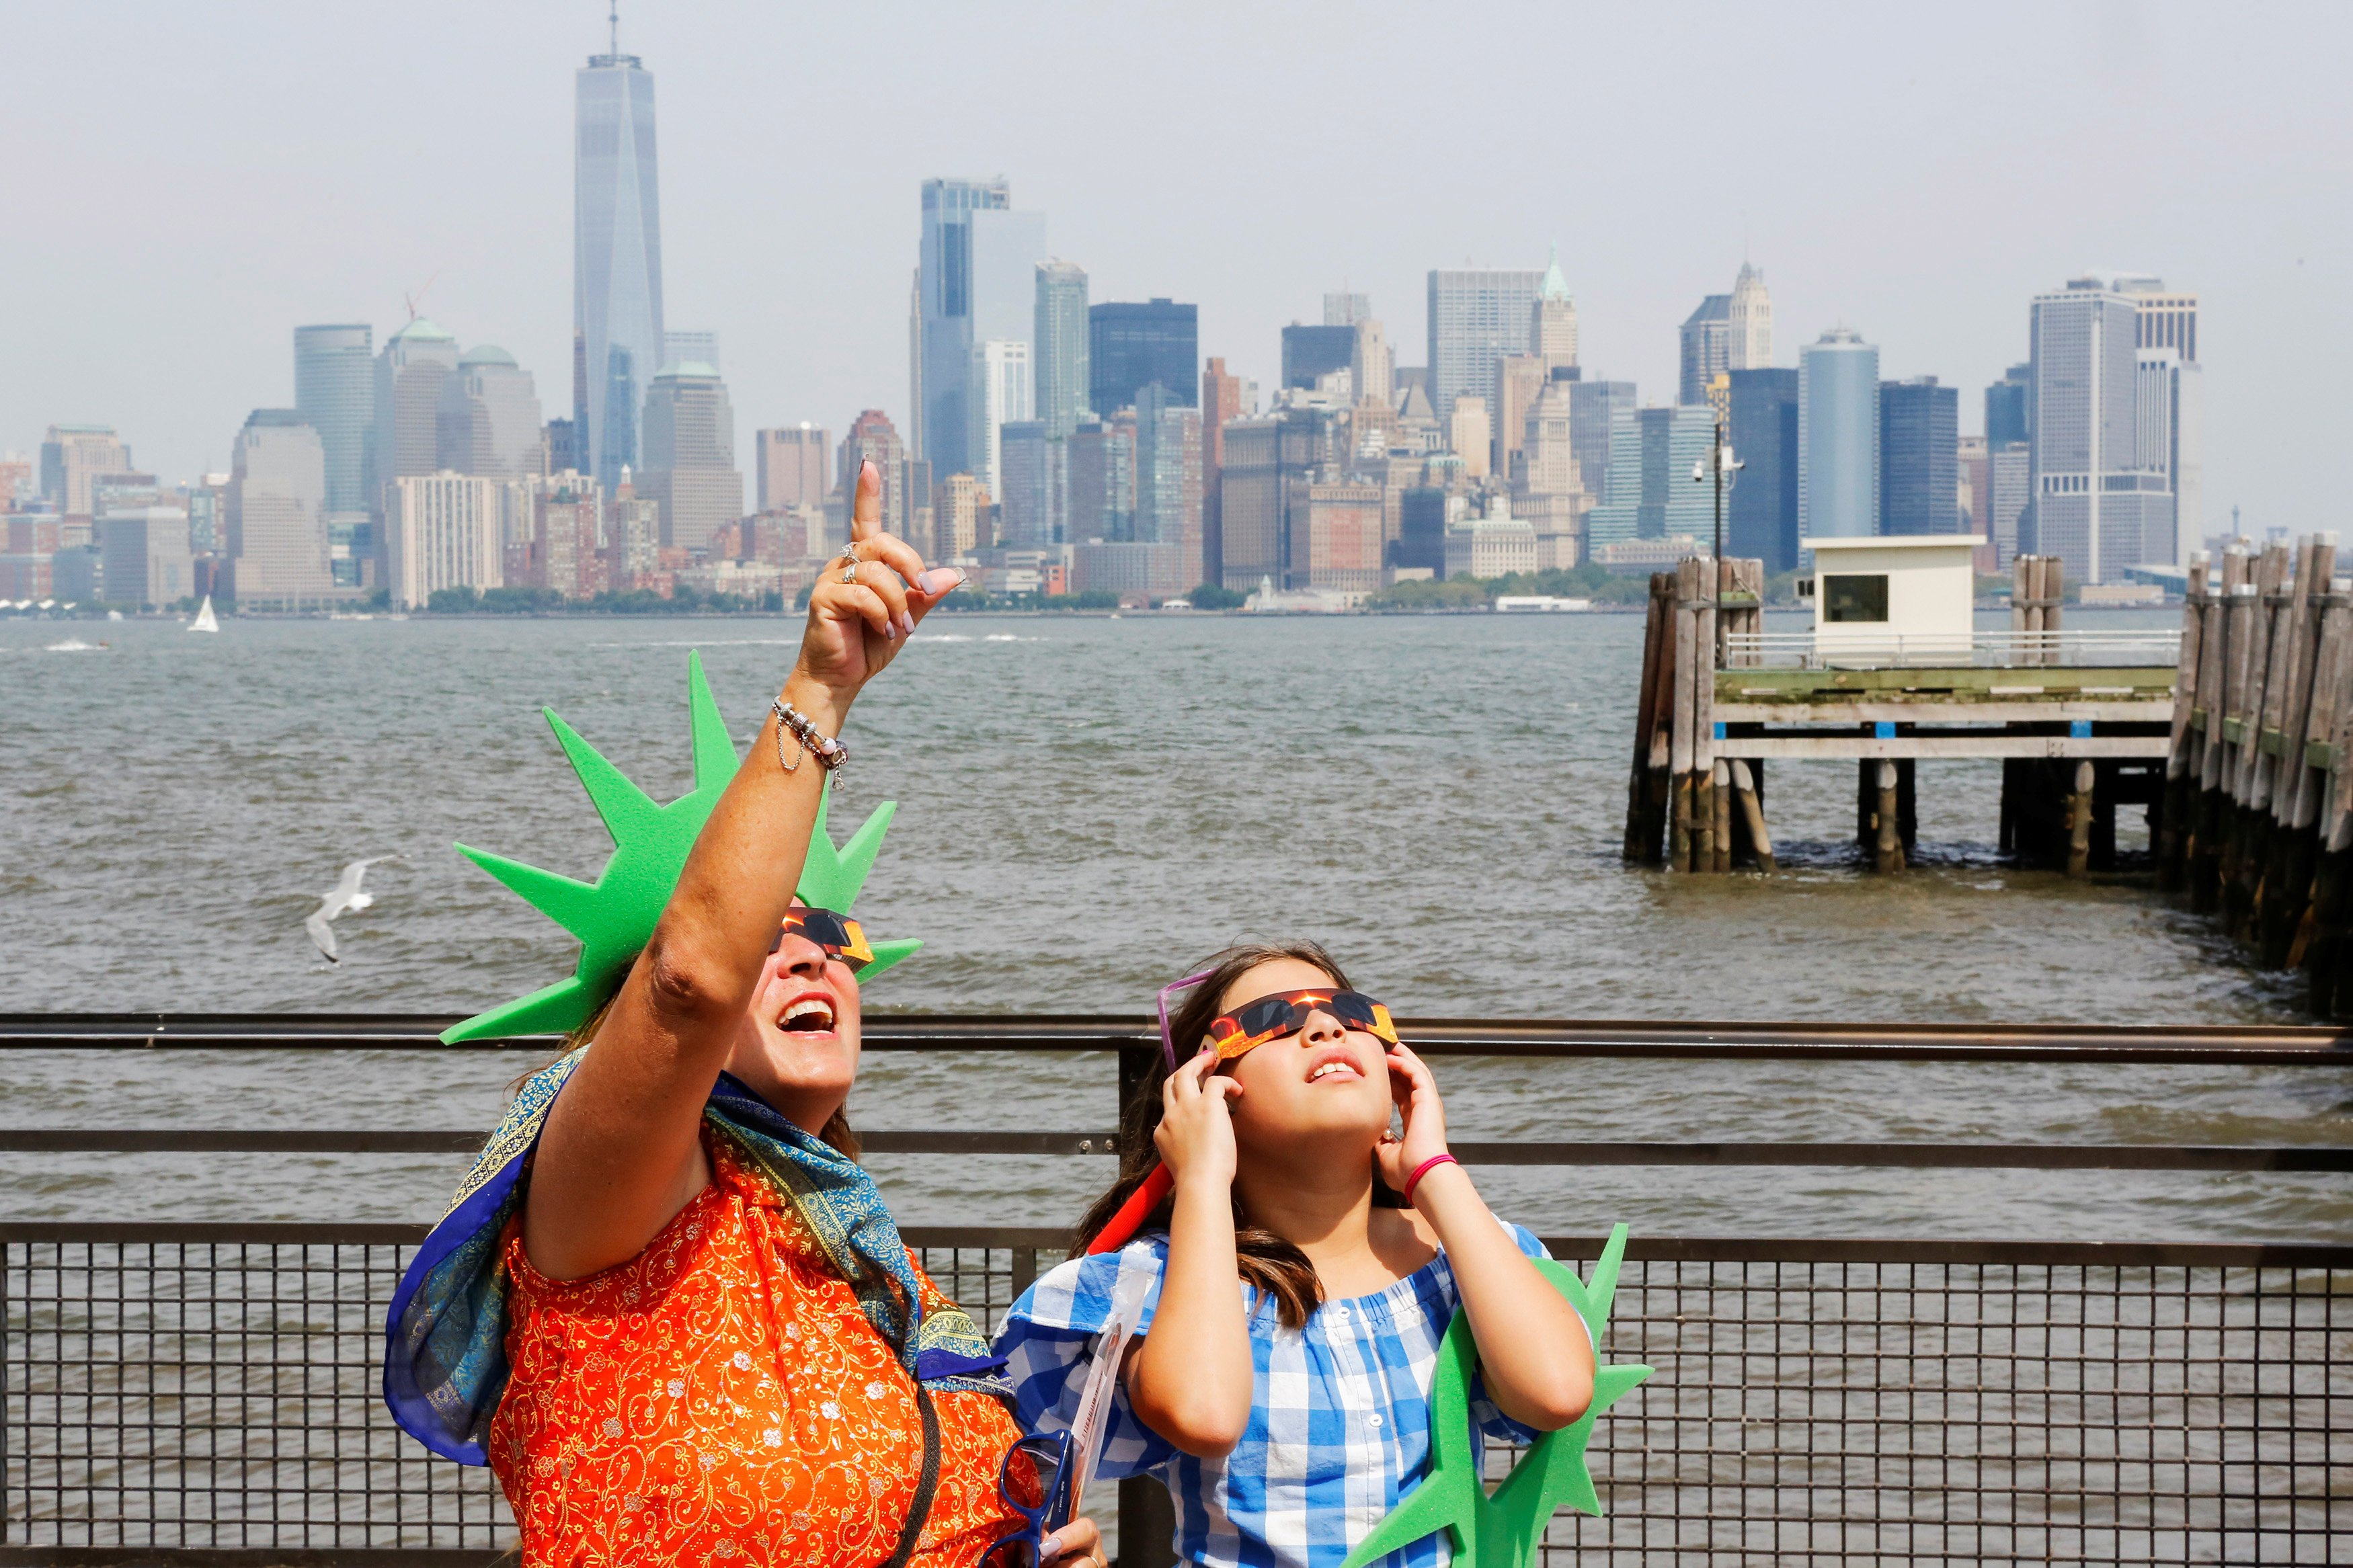 People view the solar eclipse at Liberty State Island as the Lower Manhattan and One World Trade center are seen in the background in New York, on Aug 21, 2017.